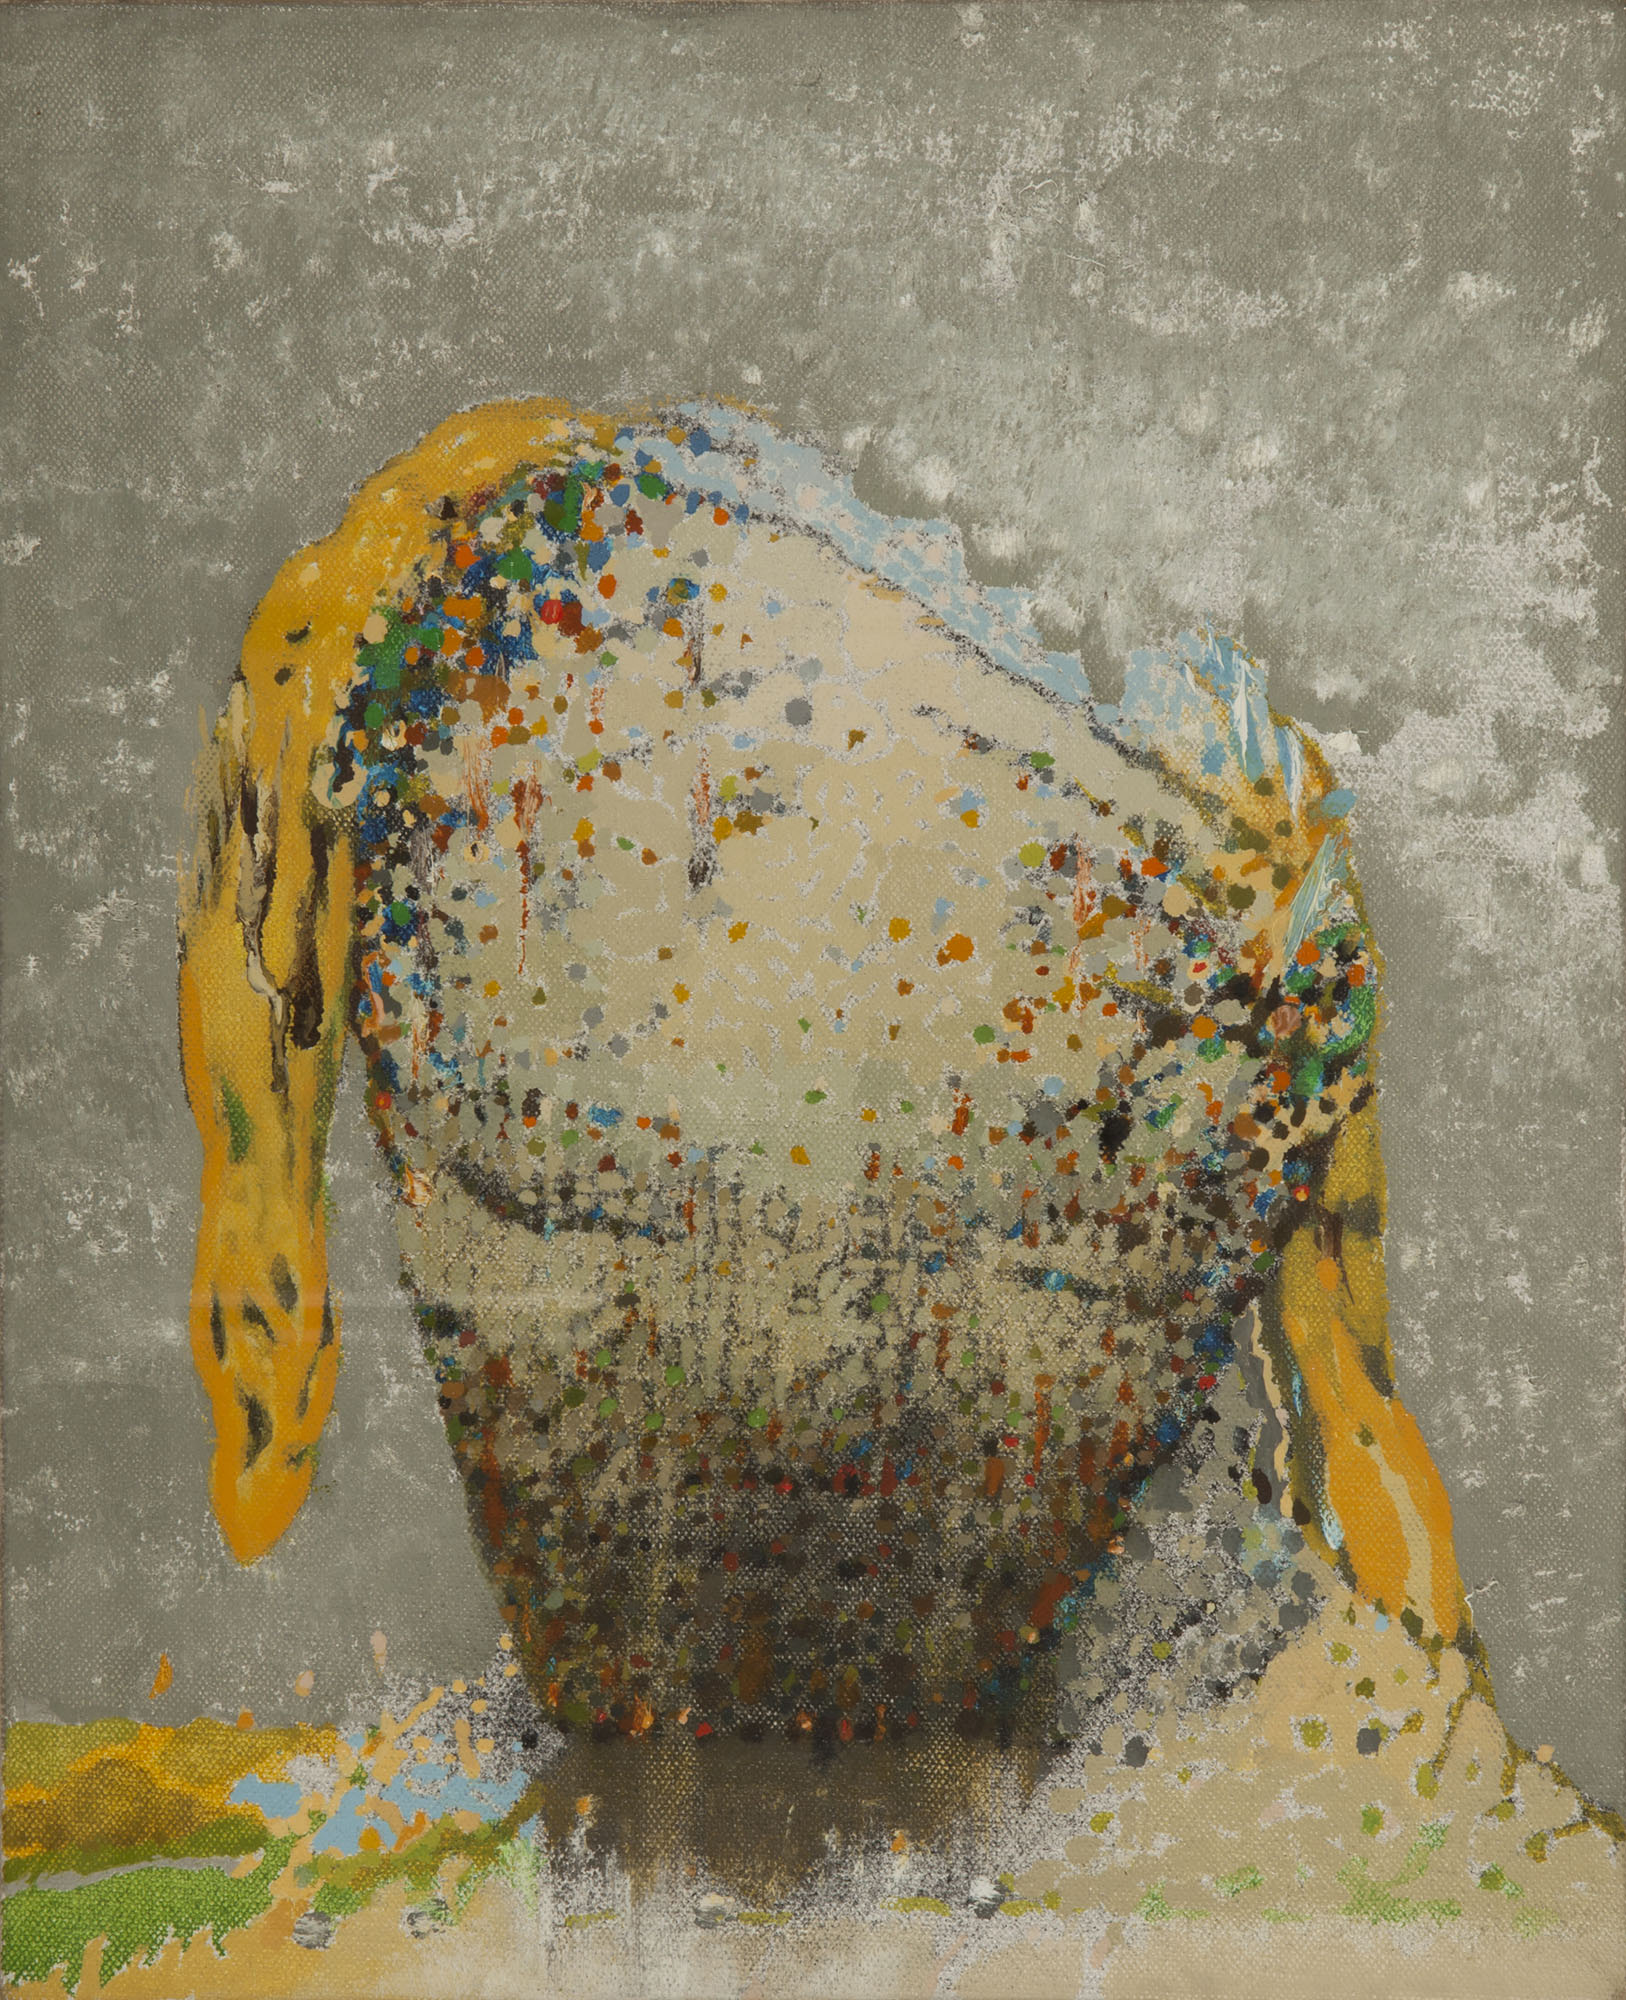 Irving Petlin, Head, 1975. Oil on board. Collection of DePaul Art Museum, gift of Samuel and Blanche Koffler, 2012.116